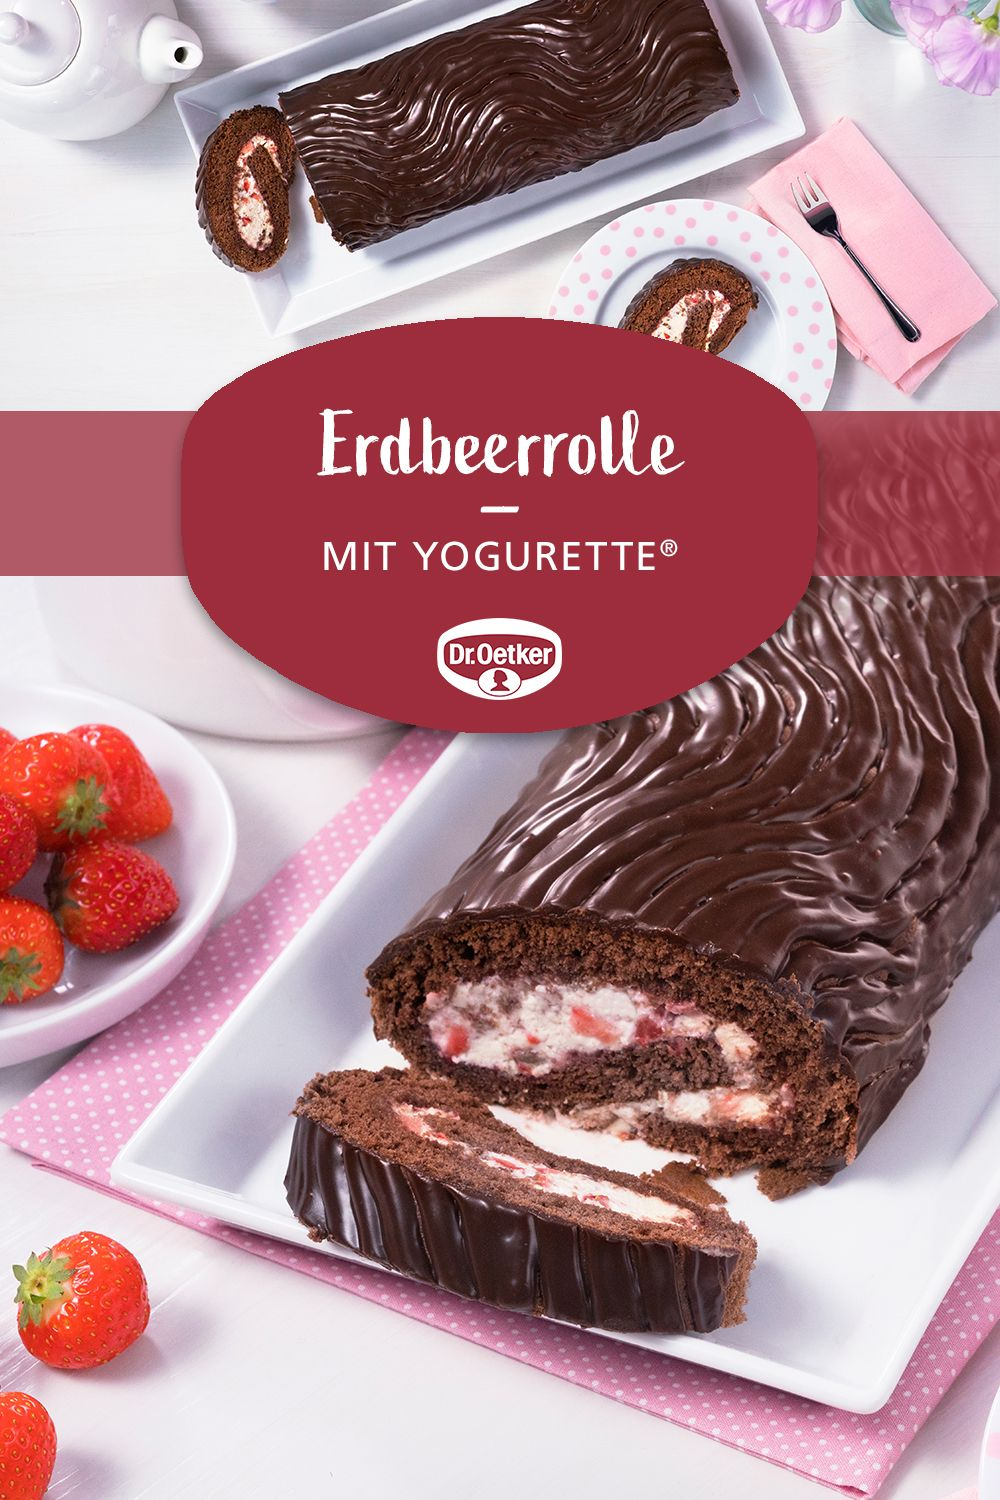 Erdbeerrolle mit Yogurette® #easyshrimprecipes